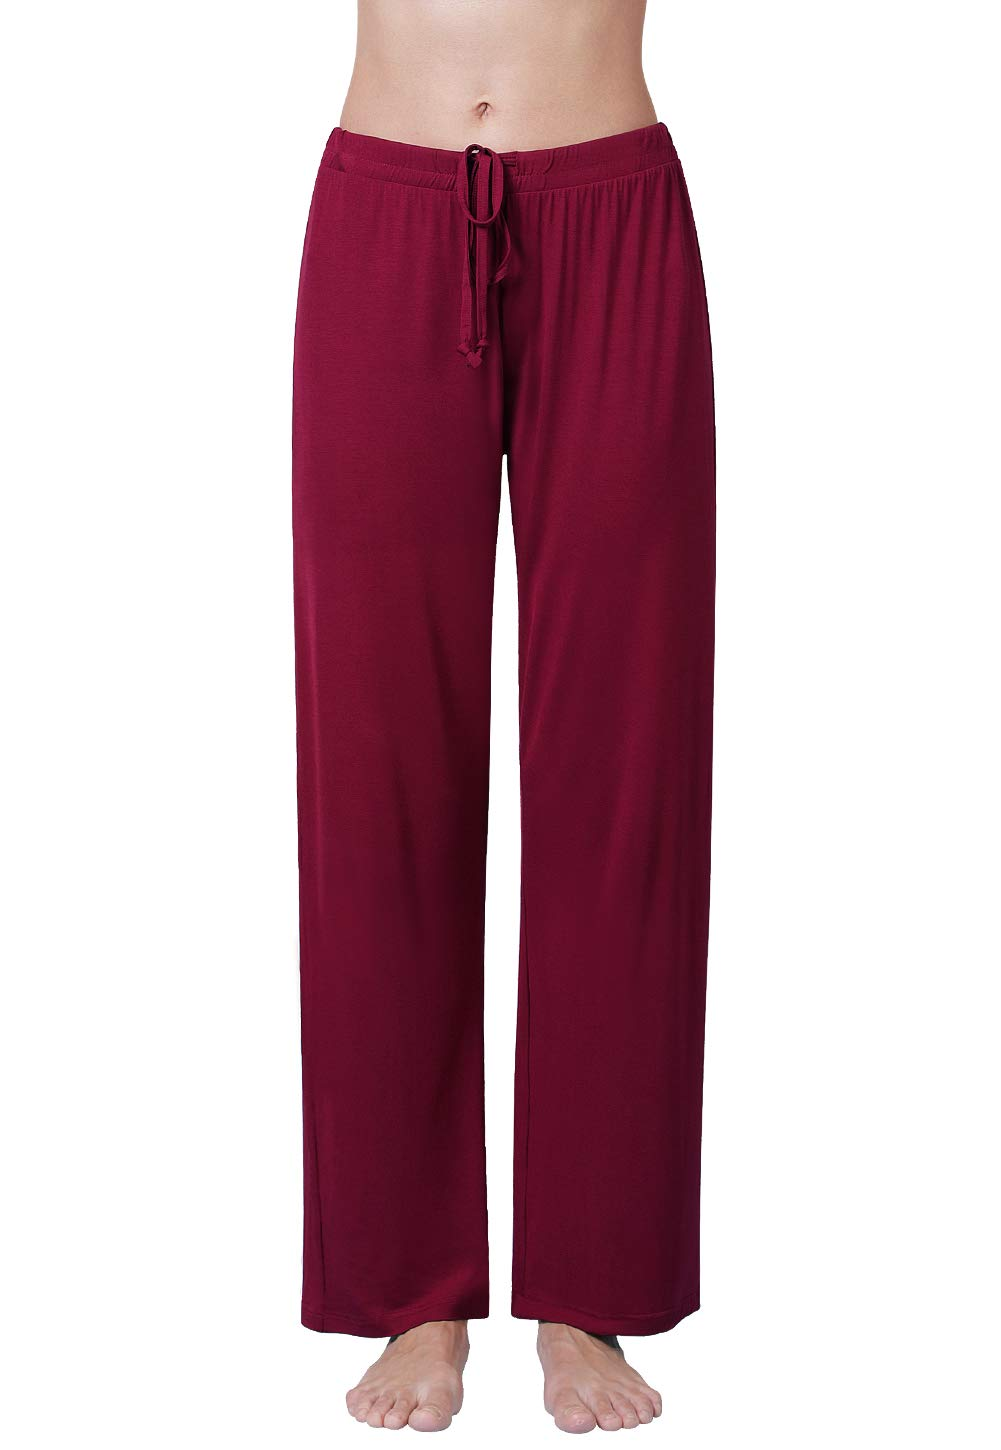 073efd0d92 Air Curvey Womens Pajama Pants Wide Leg Lounge Pants Wine Red XL